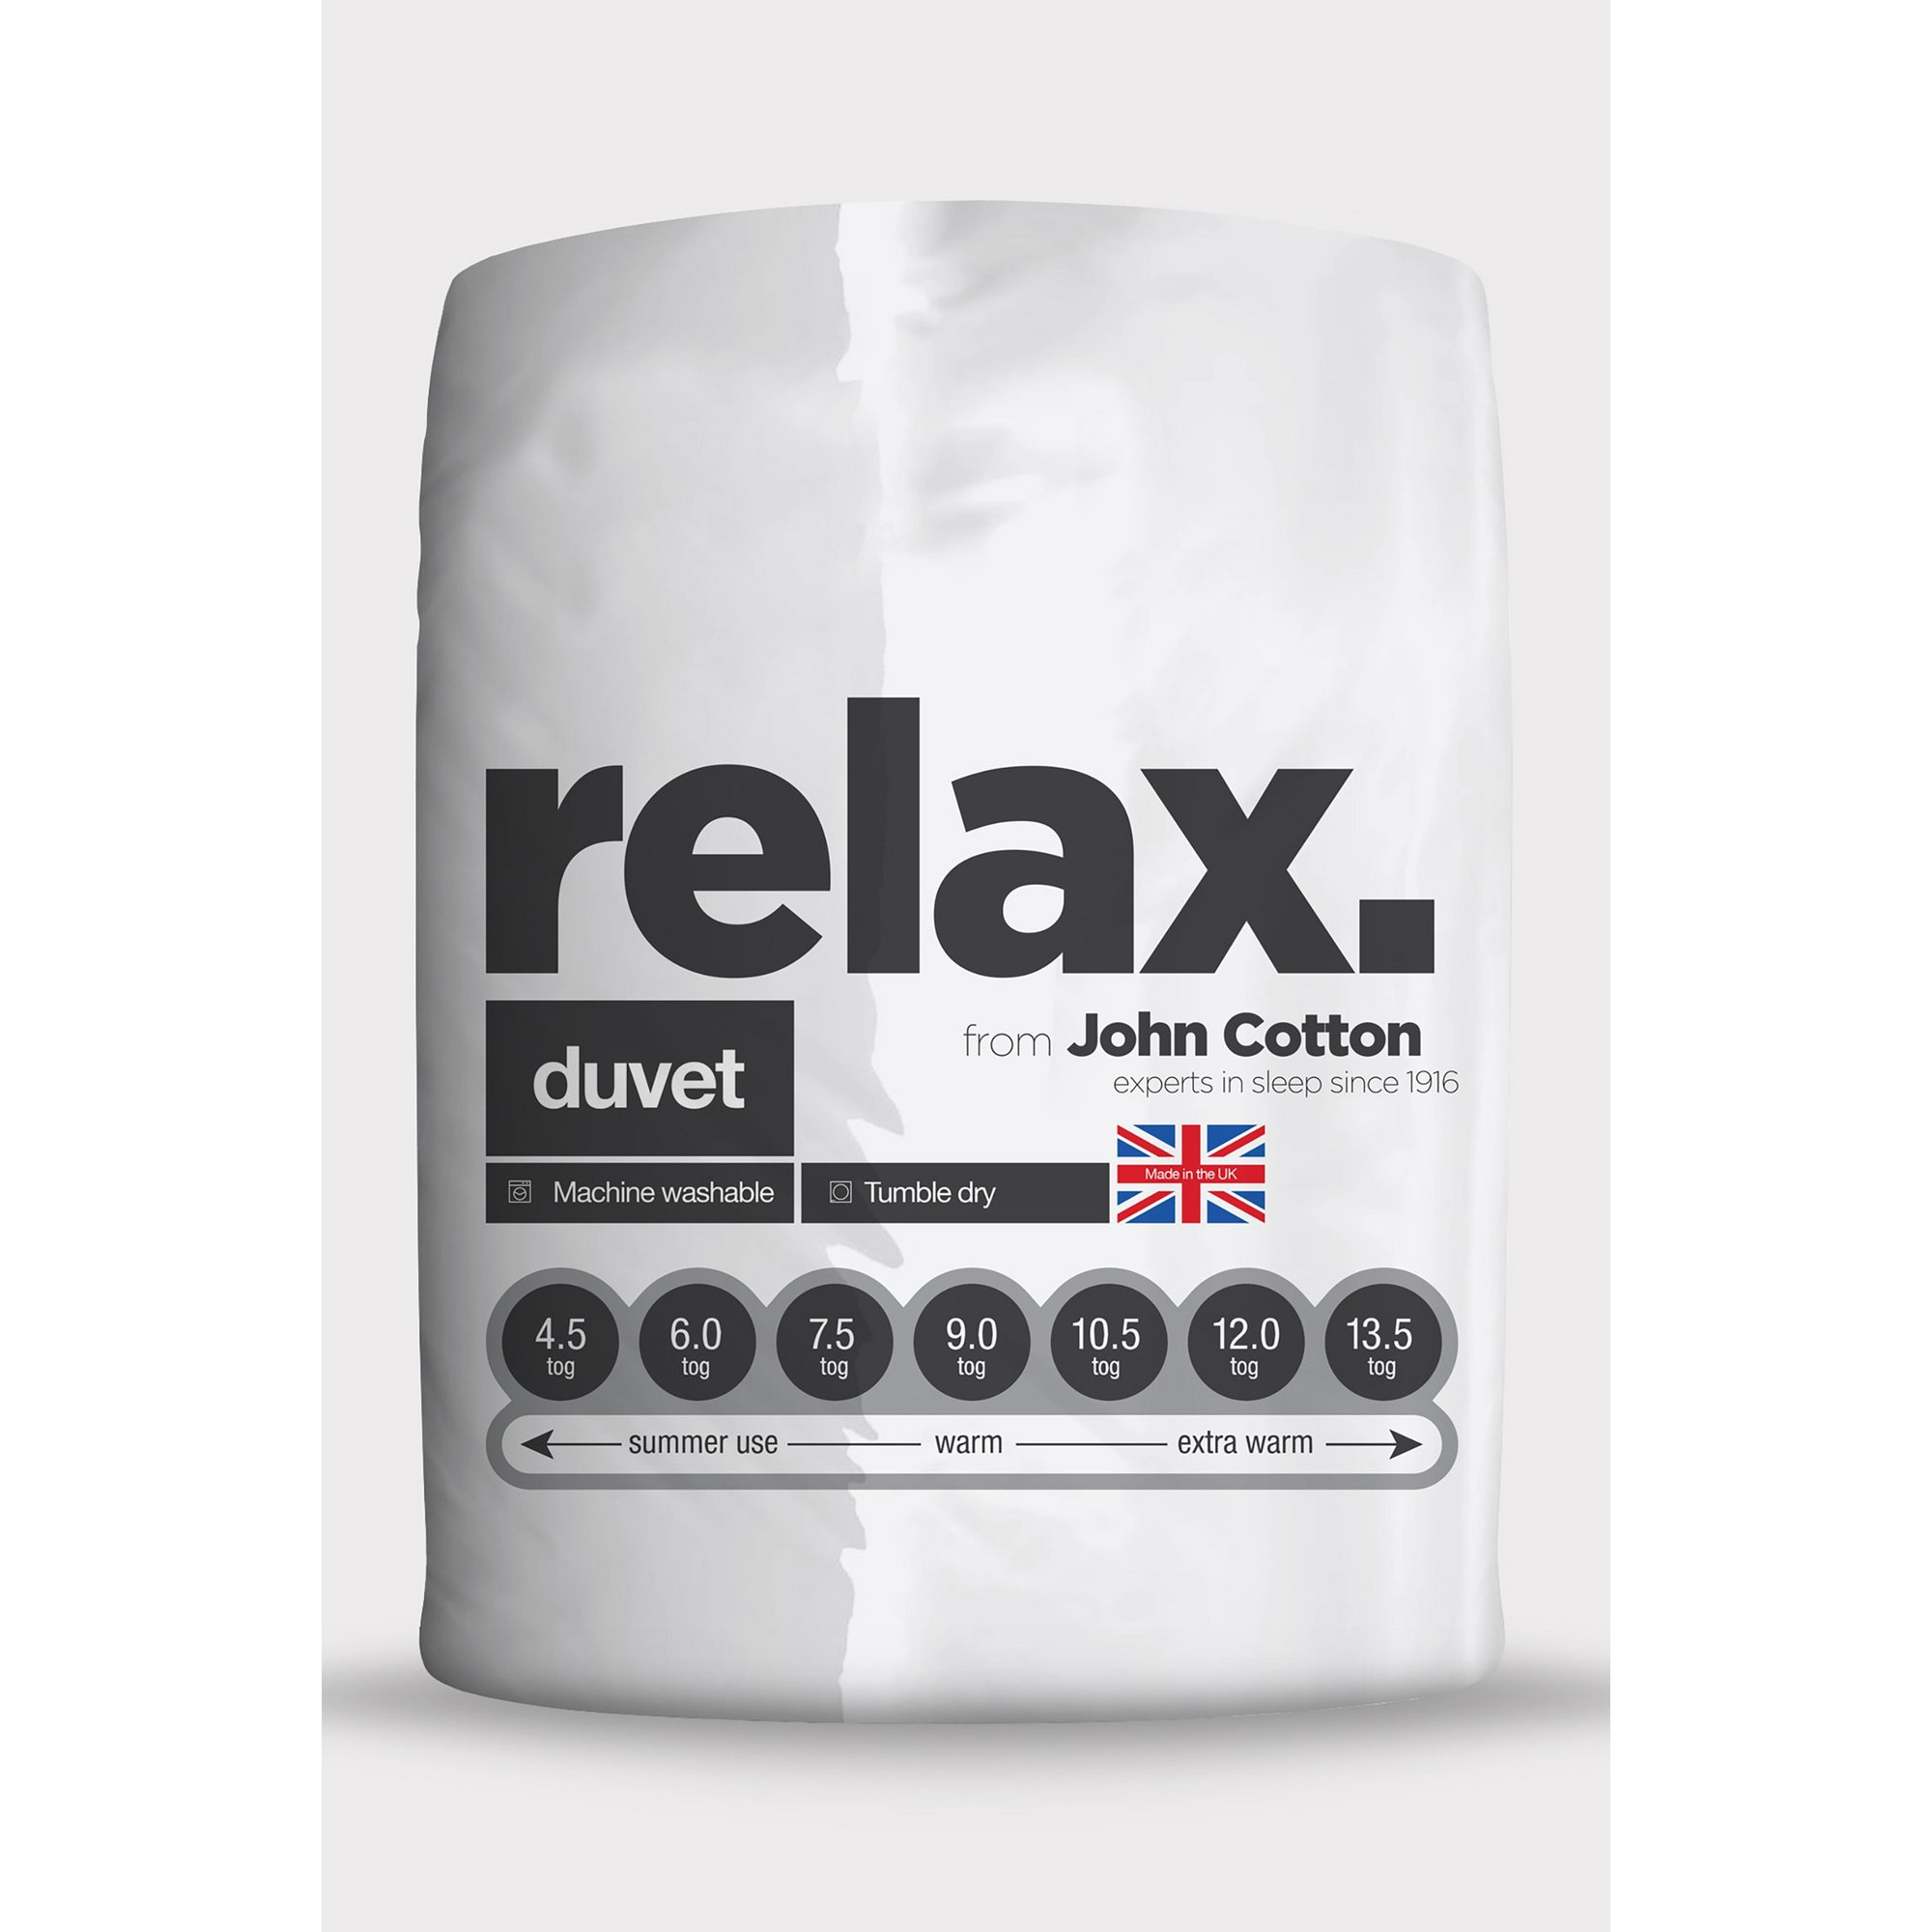 Image of Relax Duvet 4.5 Tog